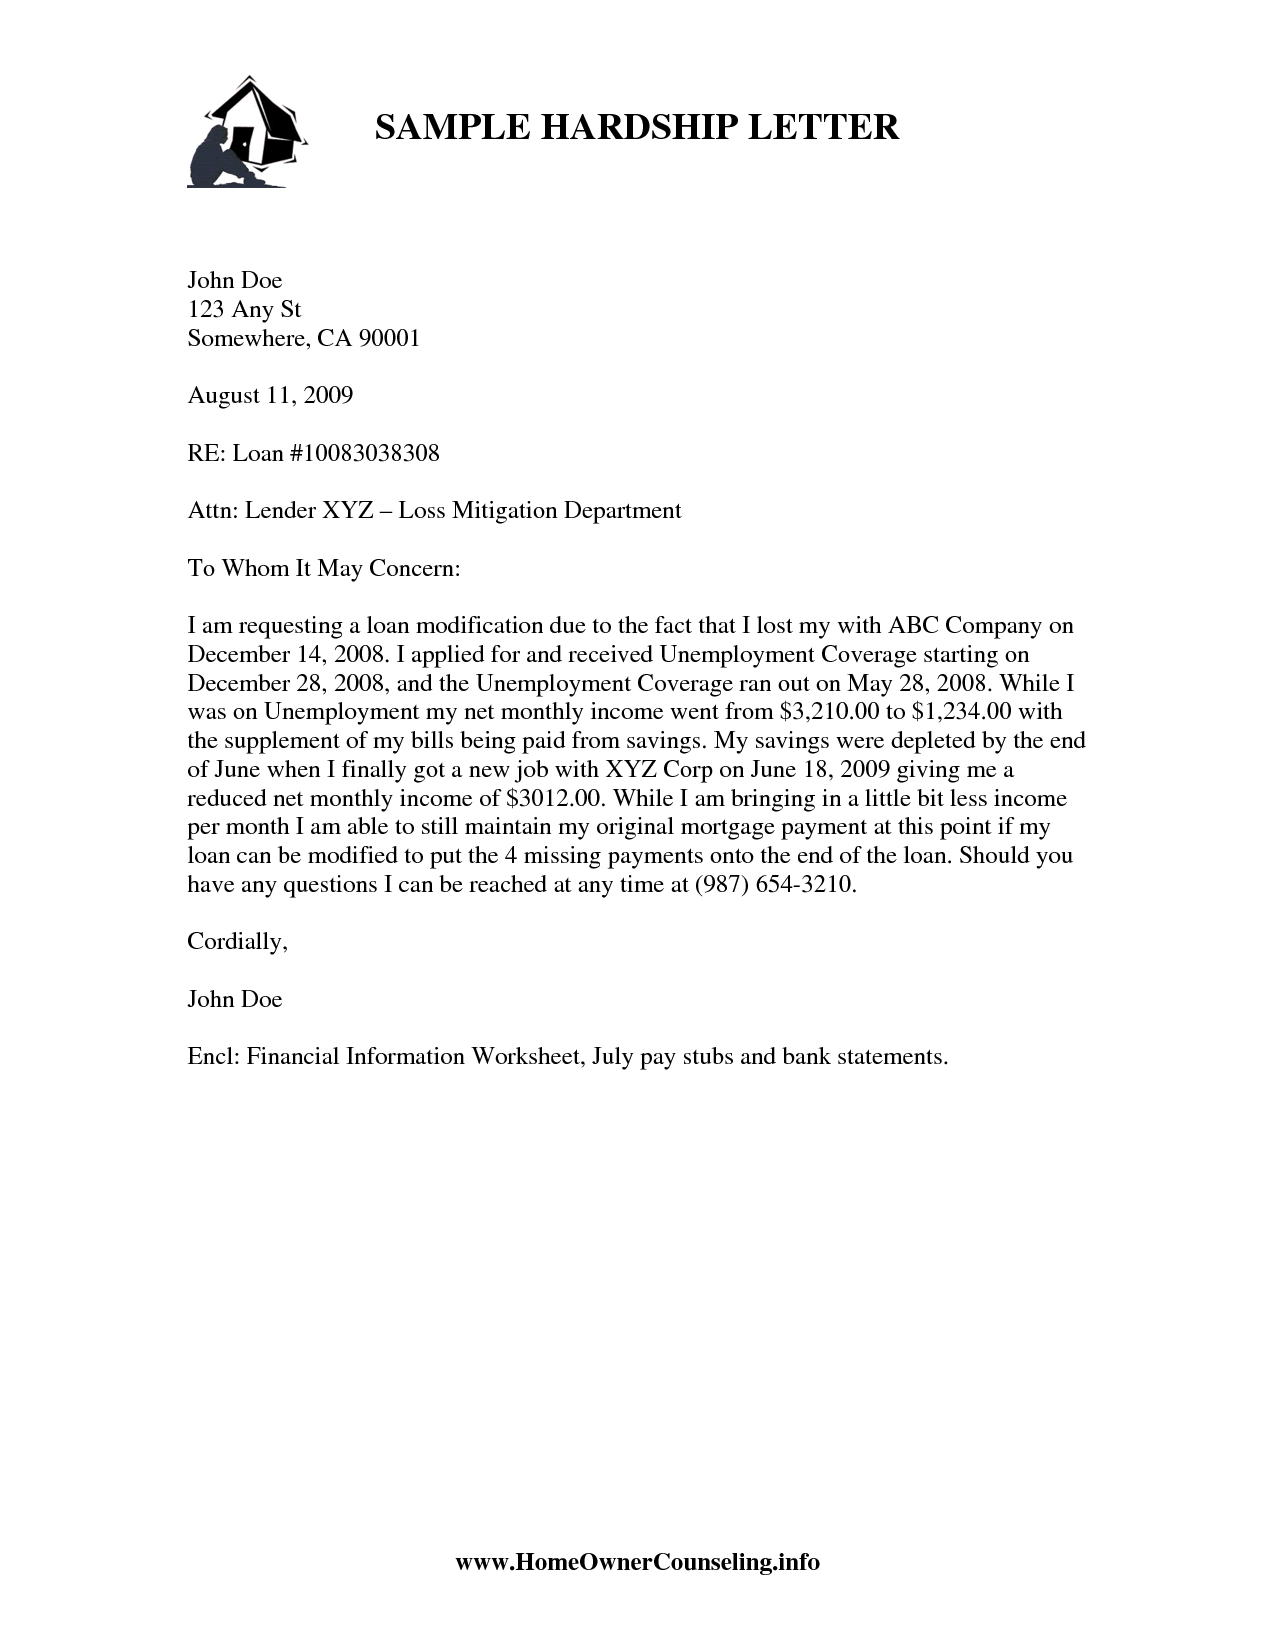 401k Hardship Letter Template - How to Write Mitigation Letter Image Collections Letter format